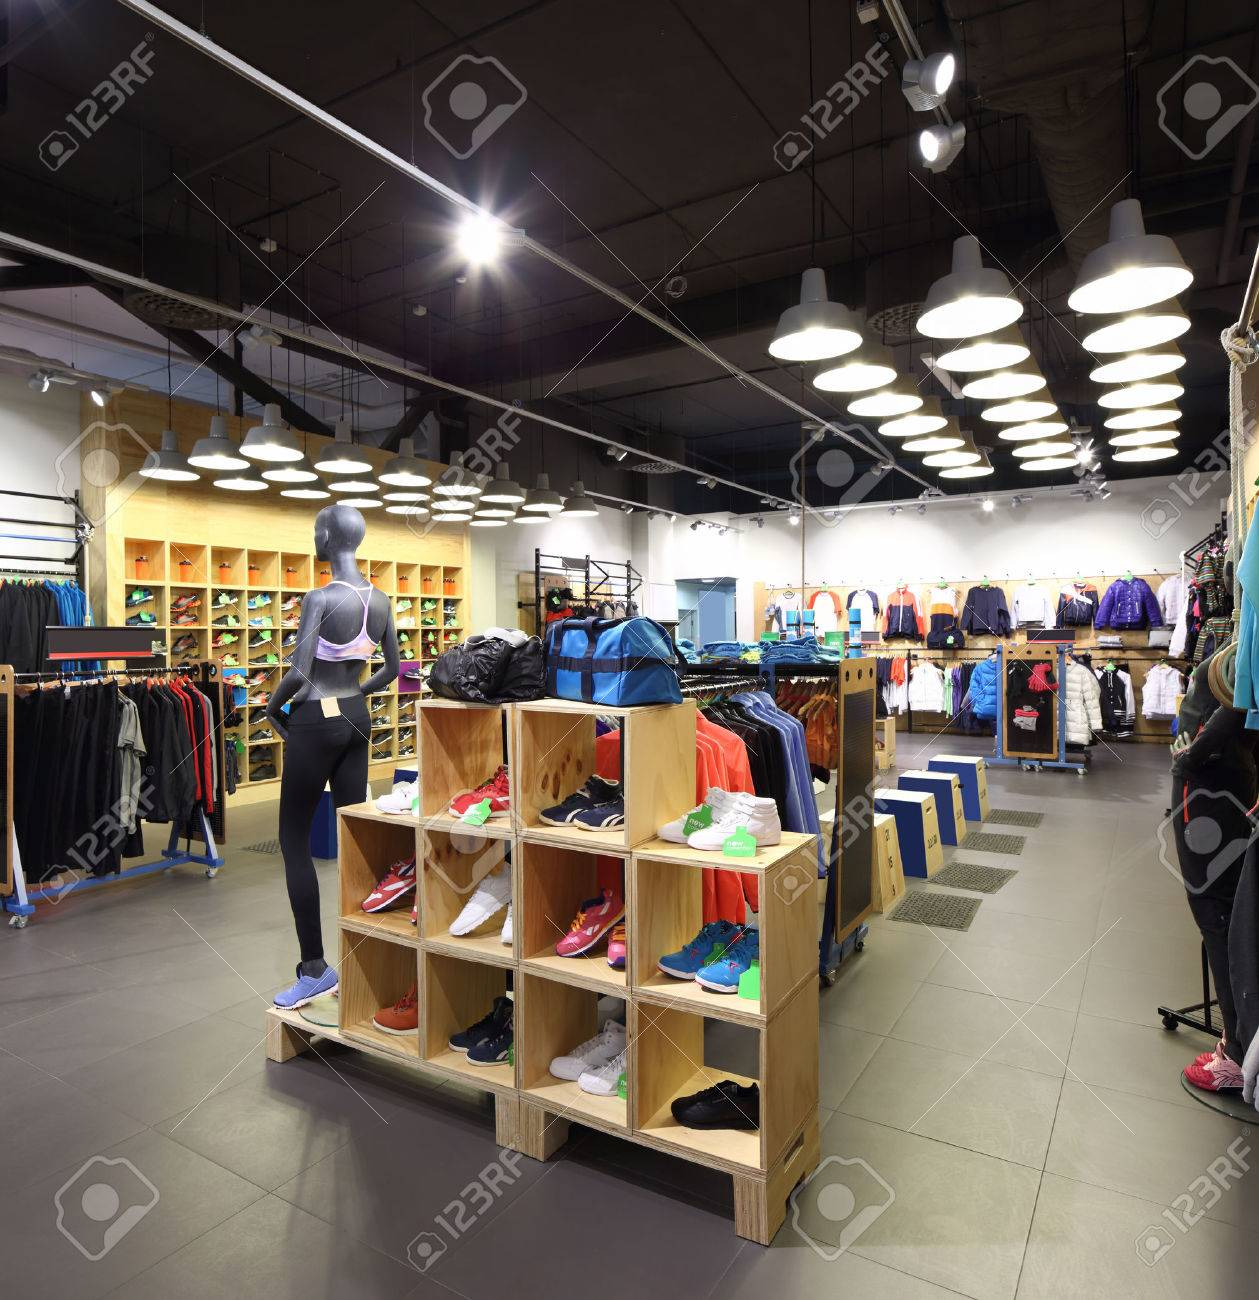 luxury and fashionable brand new interior of cloth store - 30425090